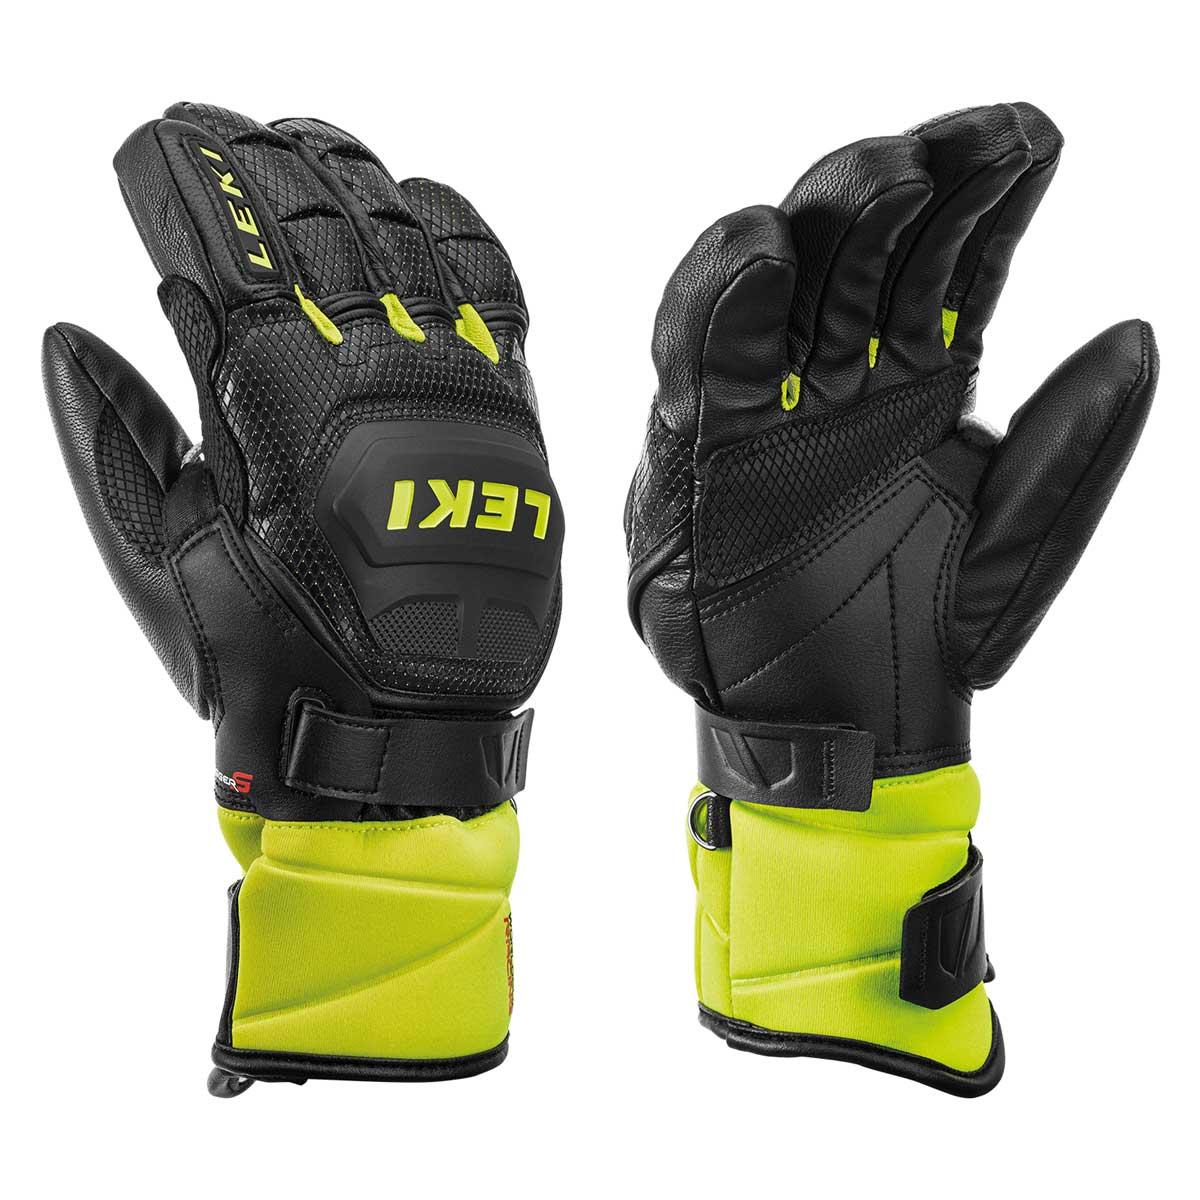 Leki Worldcup Race Flex S Glove in black and lemon